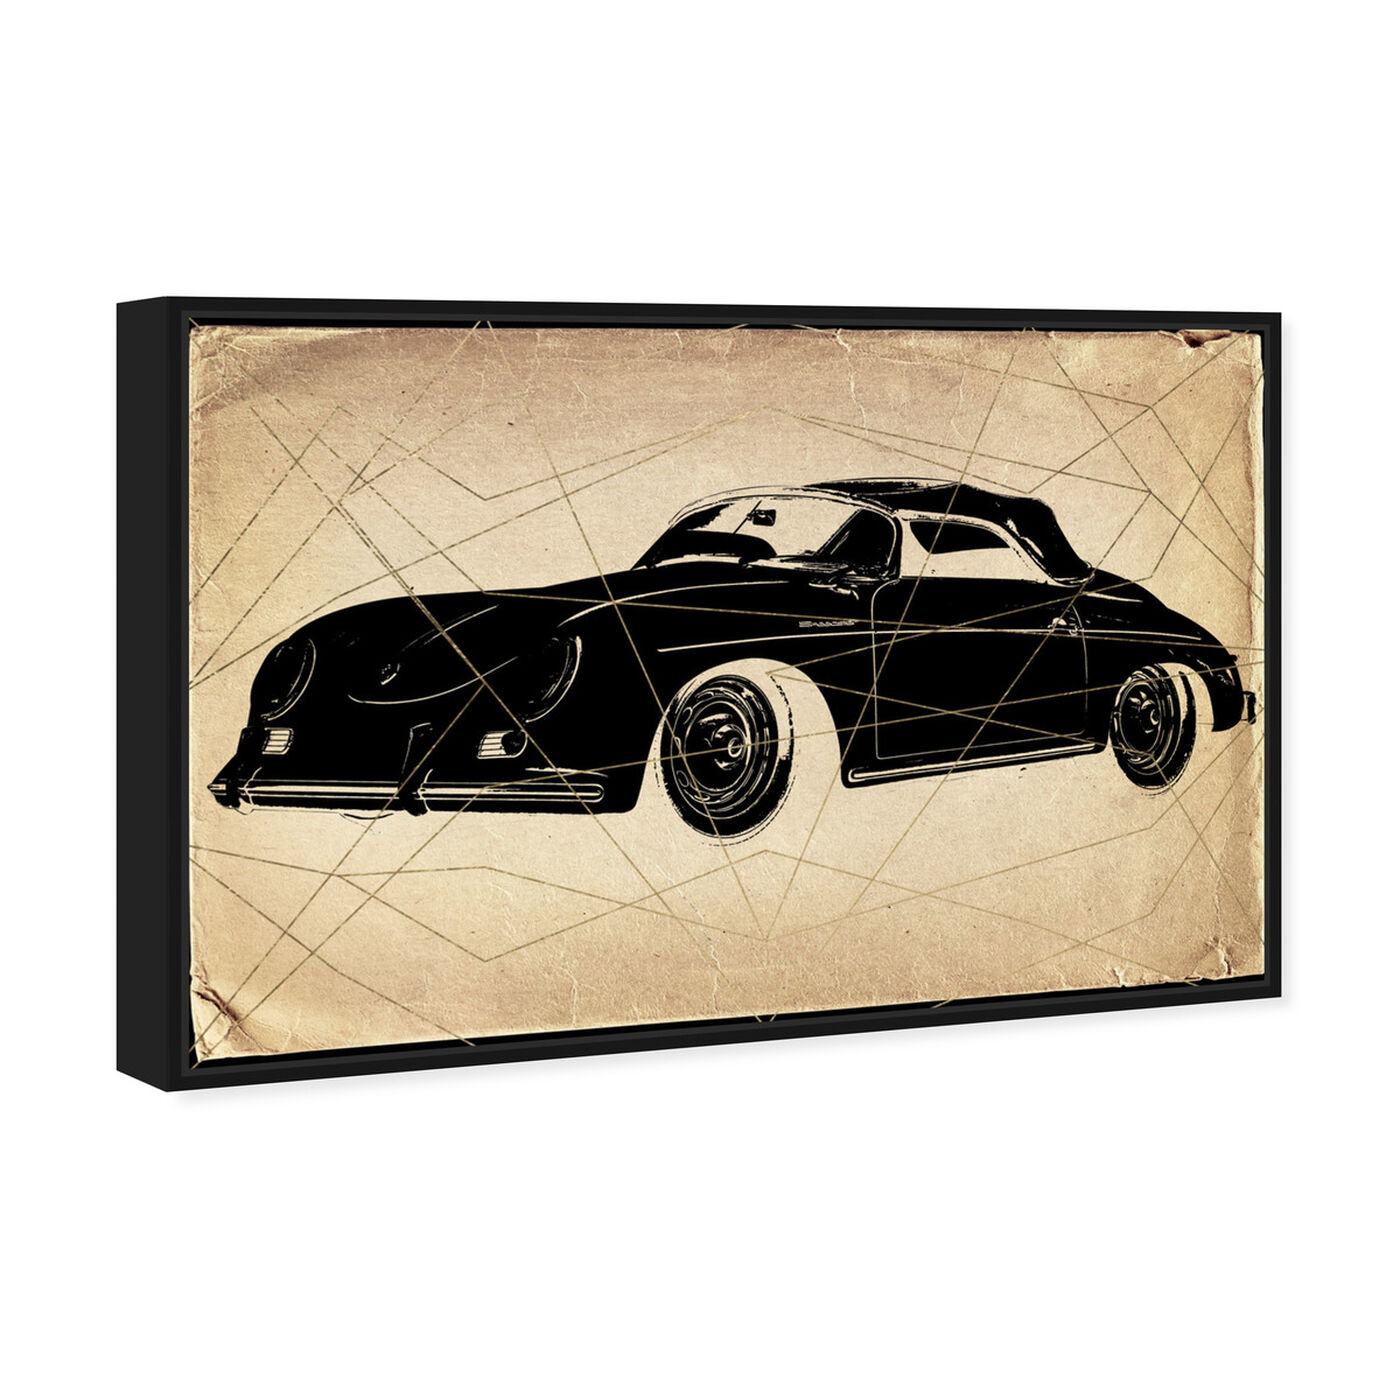 Angled view of Porsche Print featuring transportation and automobiles art.